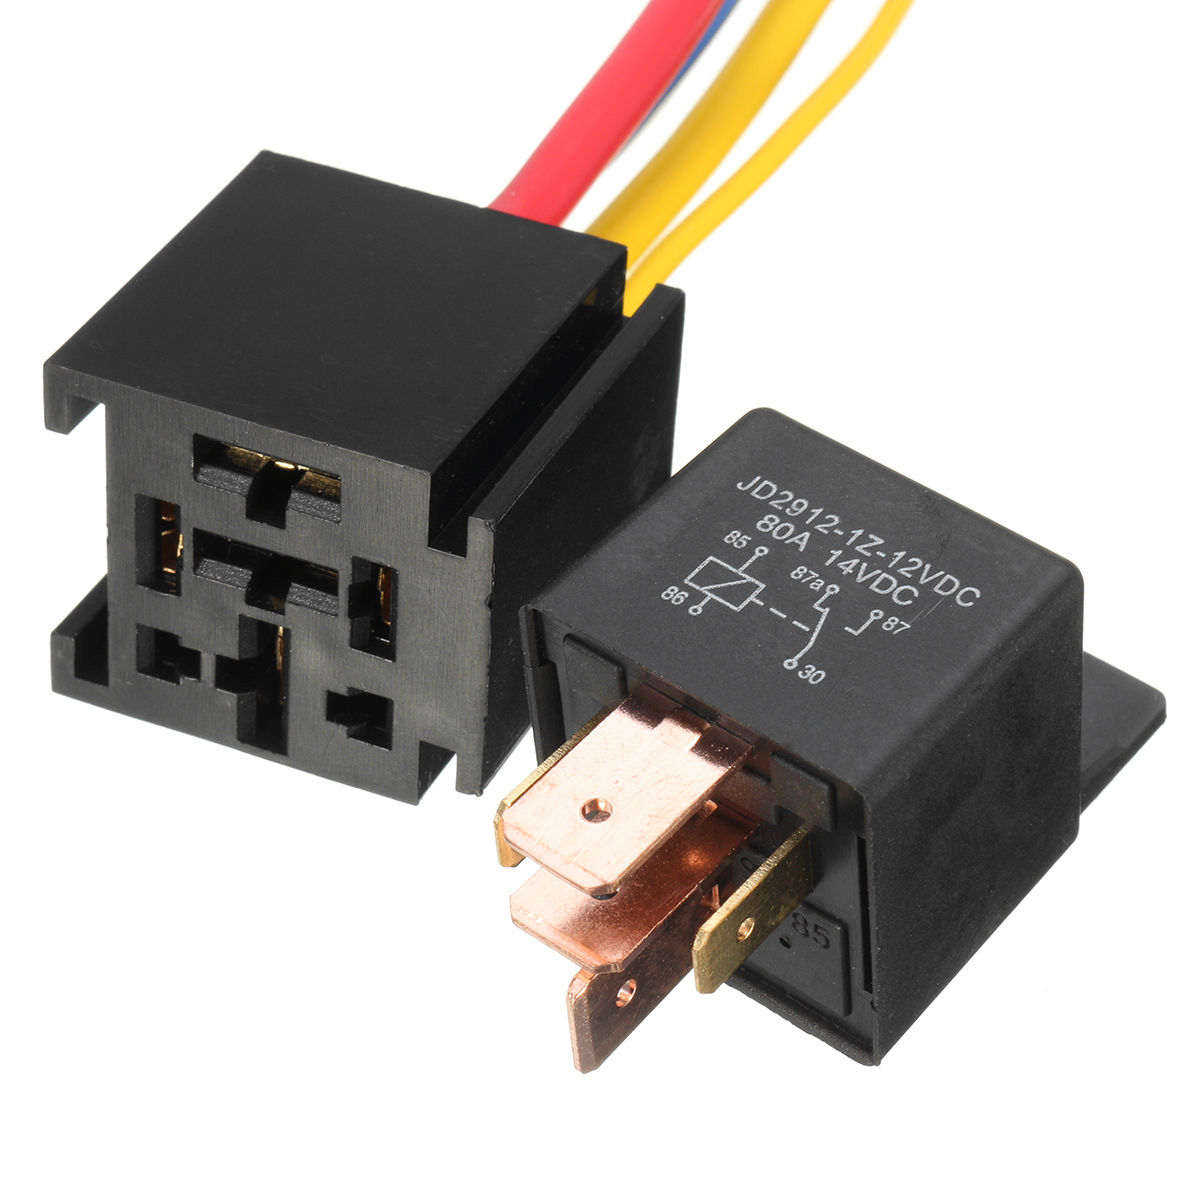 Buy 12v 80a Relay And Get Free Shipping On Spdt Solid State